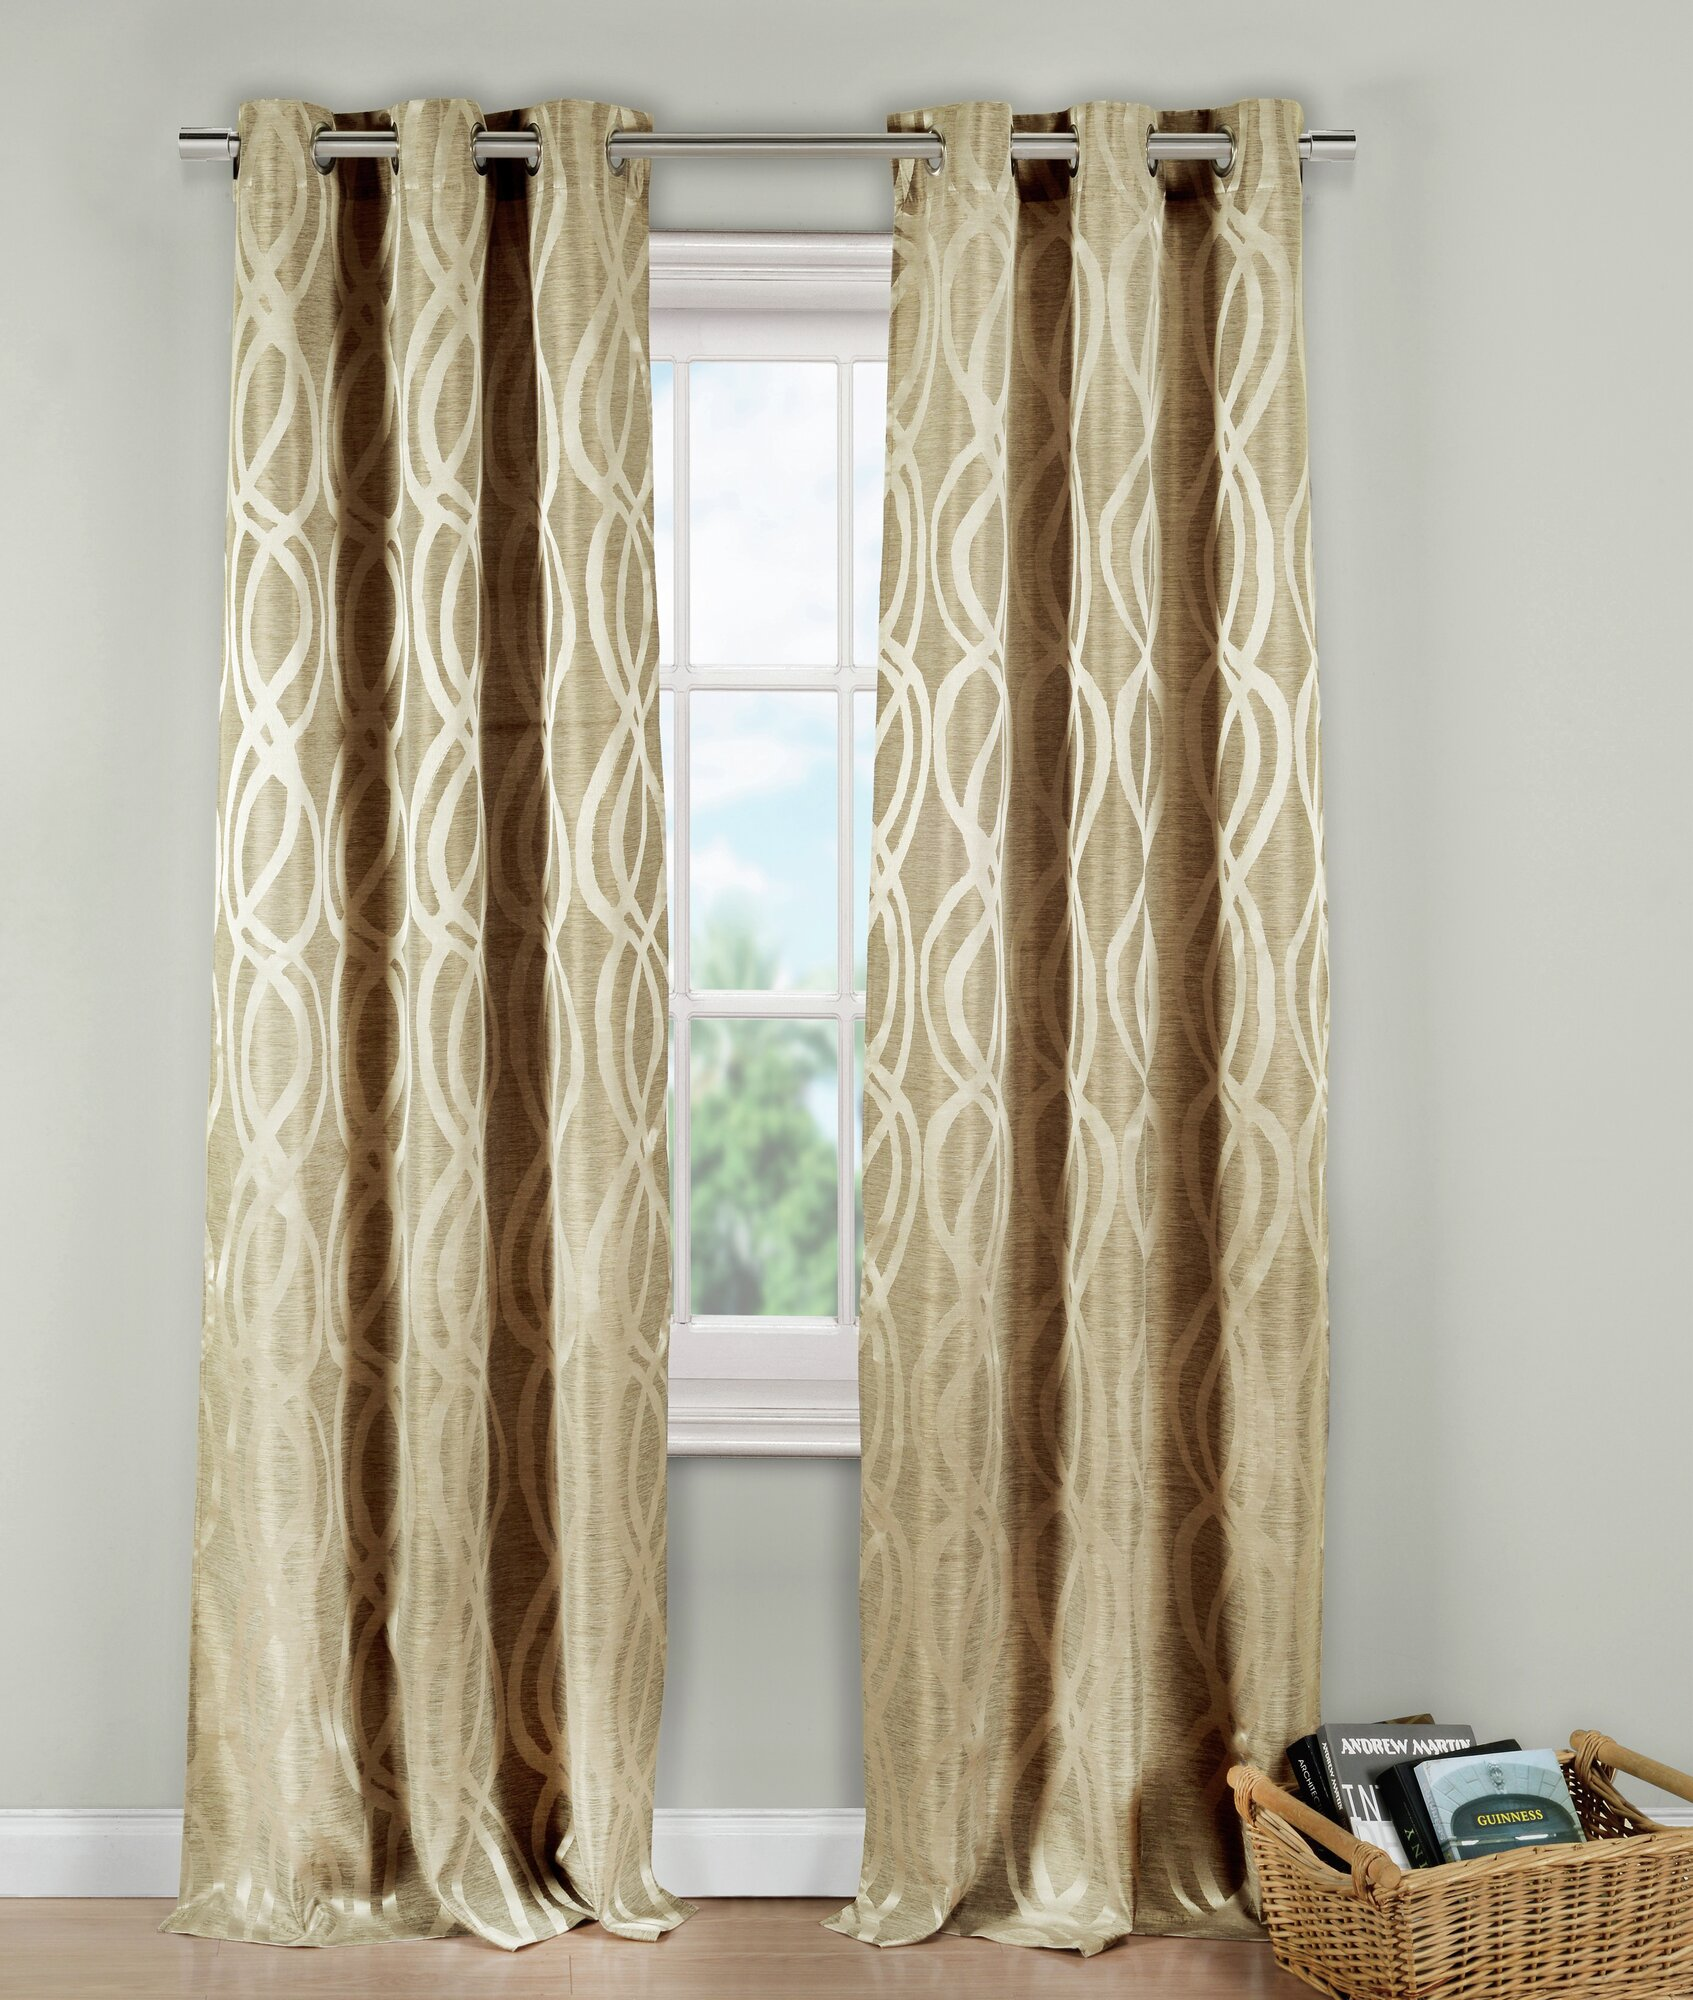 Dr International Allana Metallic Jacquard Grommet Curtain